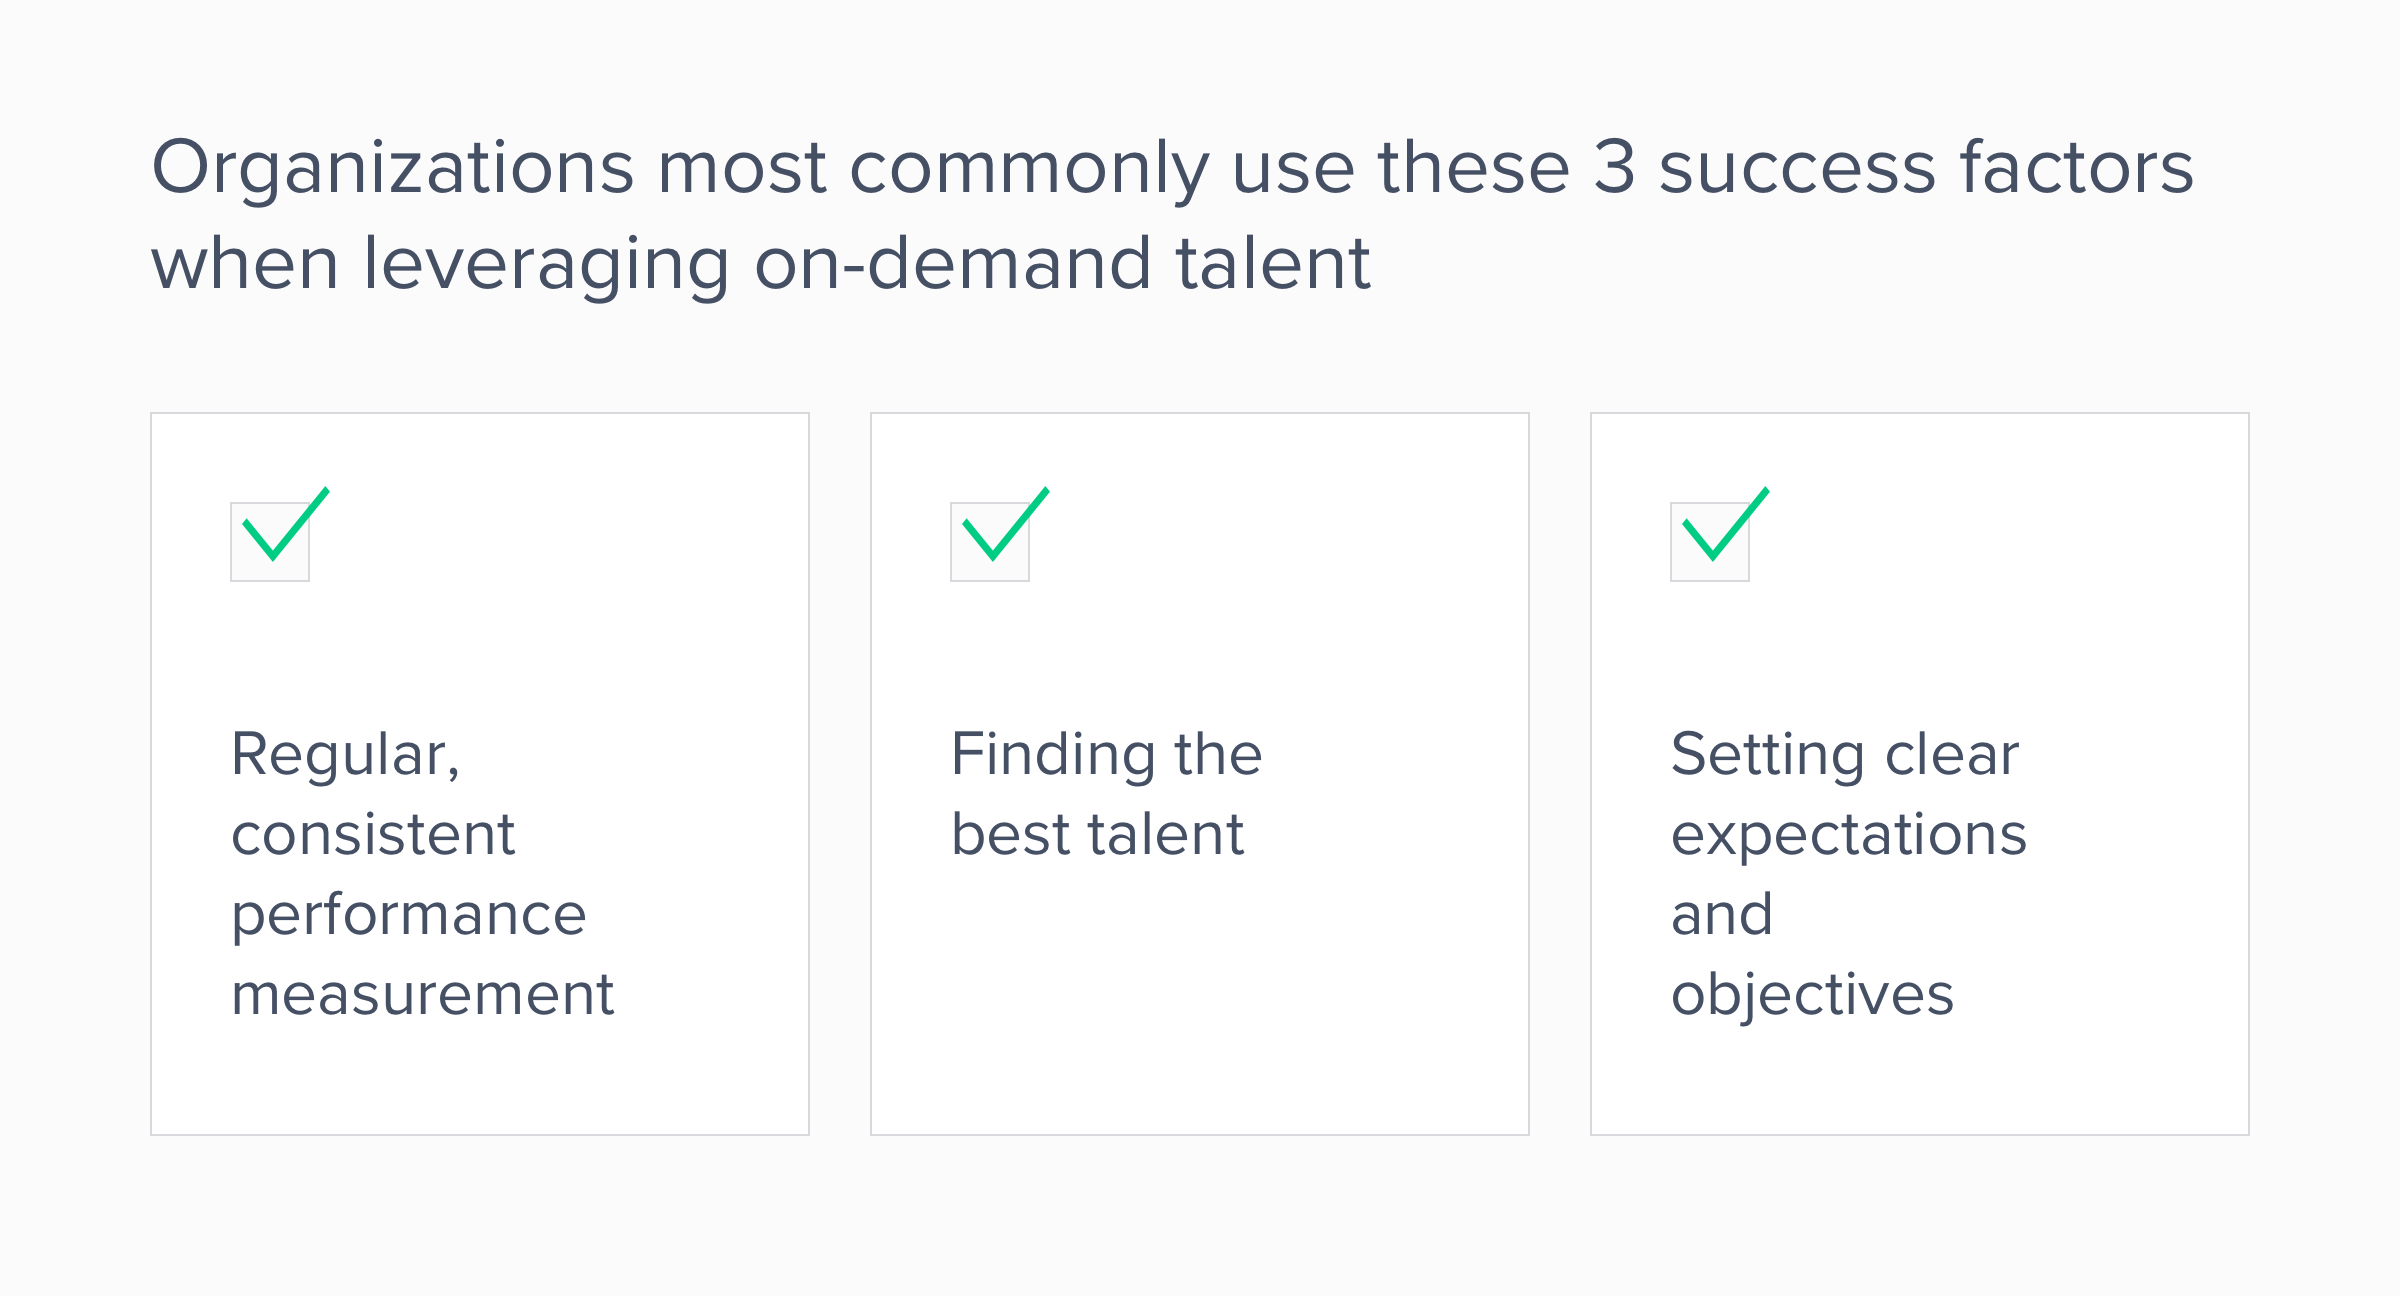 Organizations most commonly use these 3 success factors when leveraging on-demand talent: Regular, consistent performance measurement; finding the best talent; and setting clear expectations and objectives.